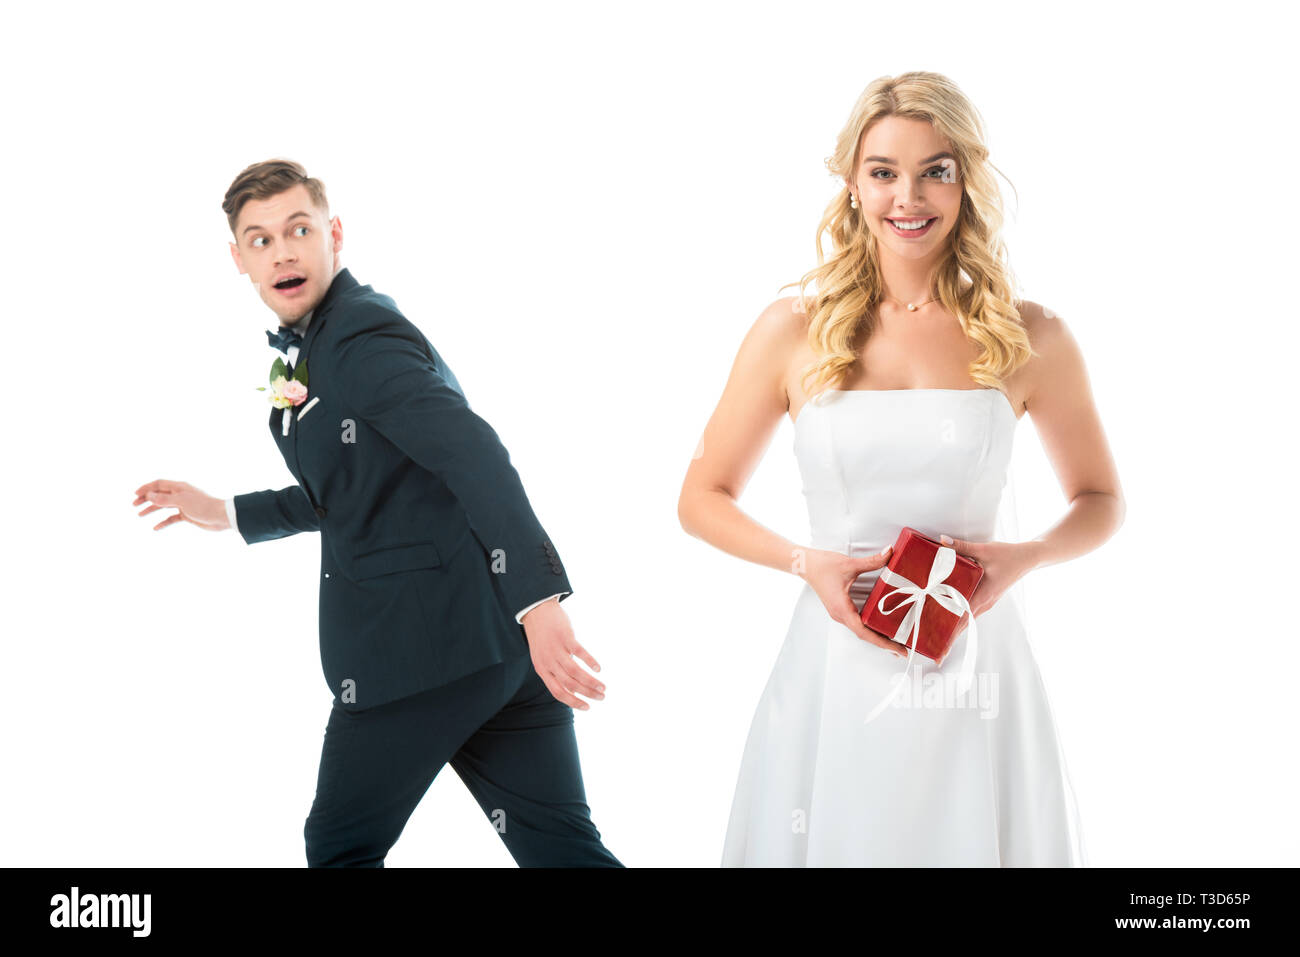 happy beautiful bride holding gift box, while tricky groom imitating running away isolated on white Stock Photo